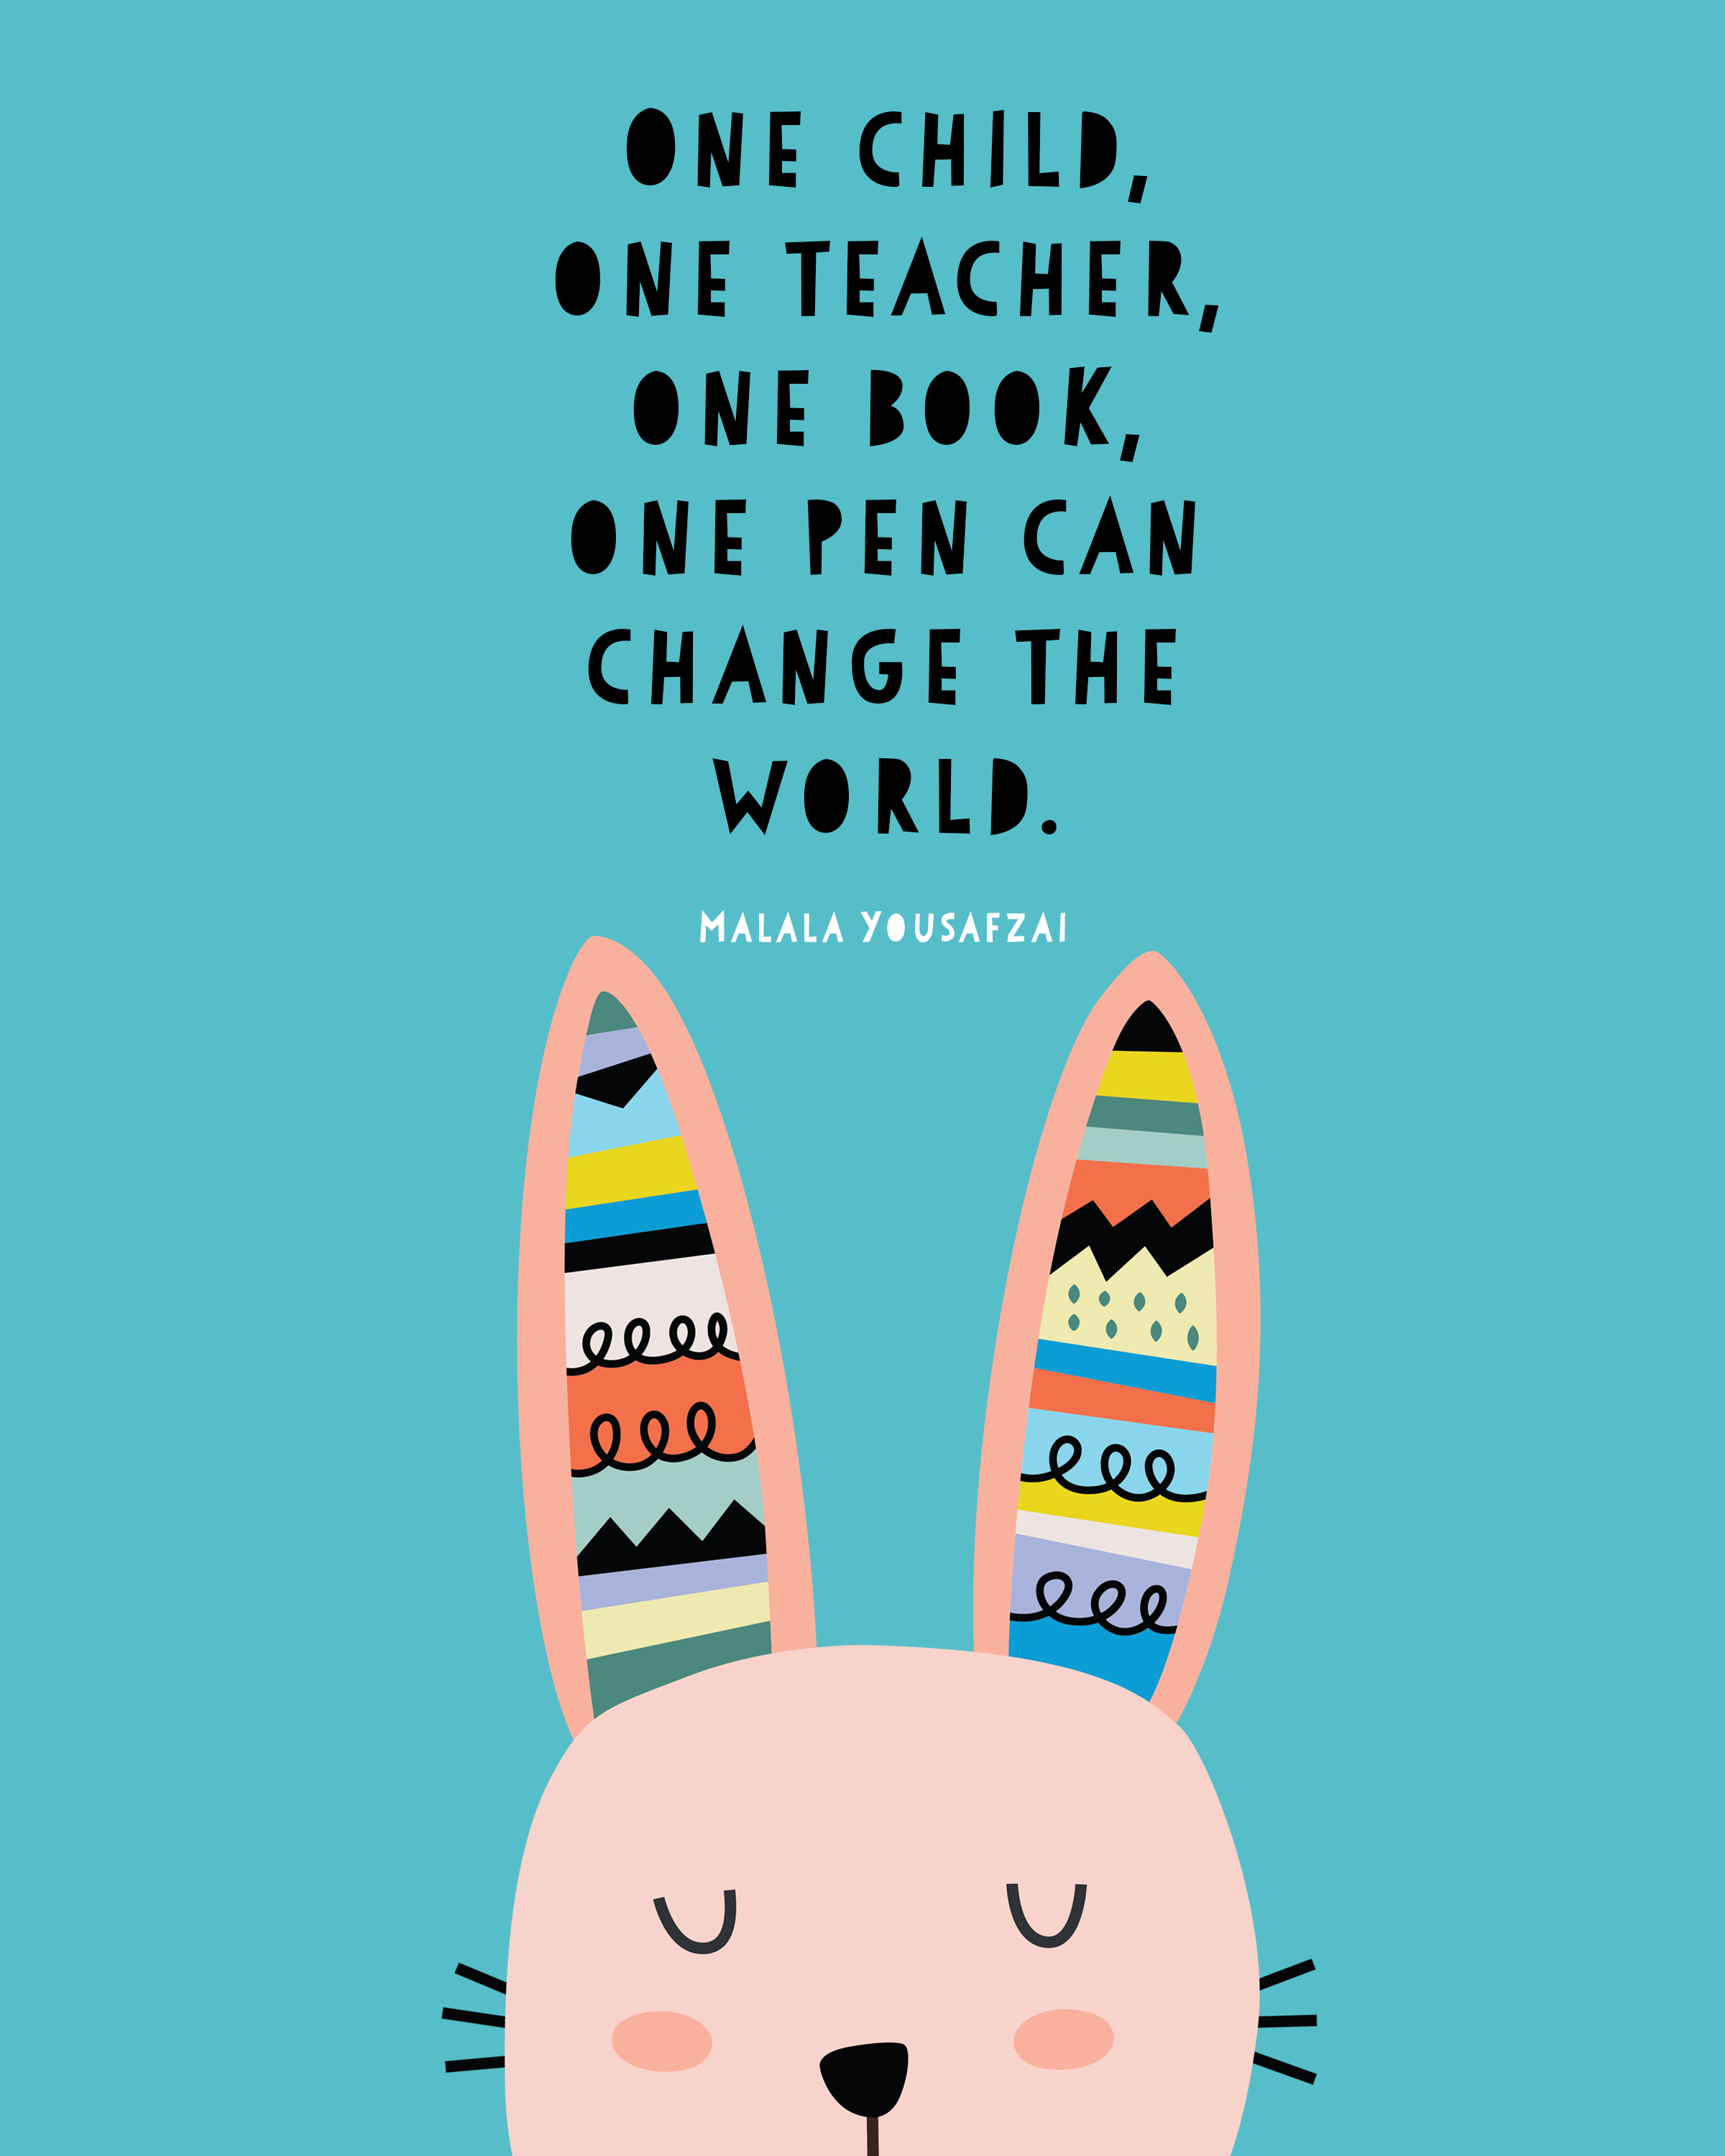 Free printable Malala Yousafzai quote print: One child, one teacher, one book, one pen can change the world | by KRAFT&MINT design exclusive for coolmompicks.com